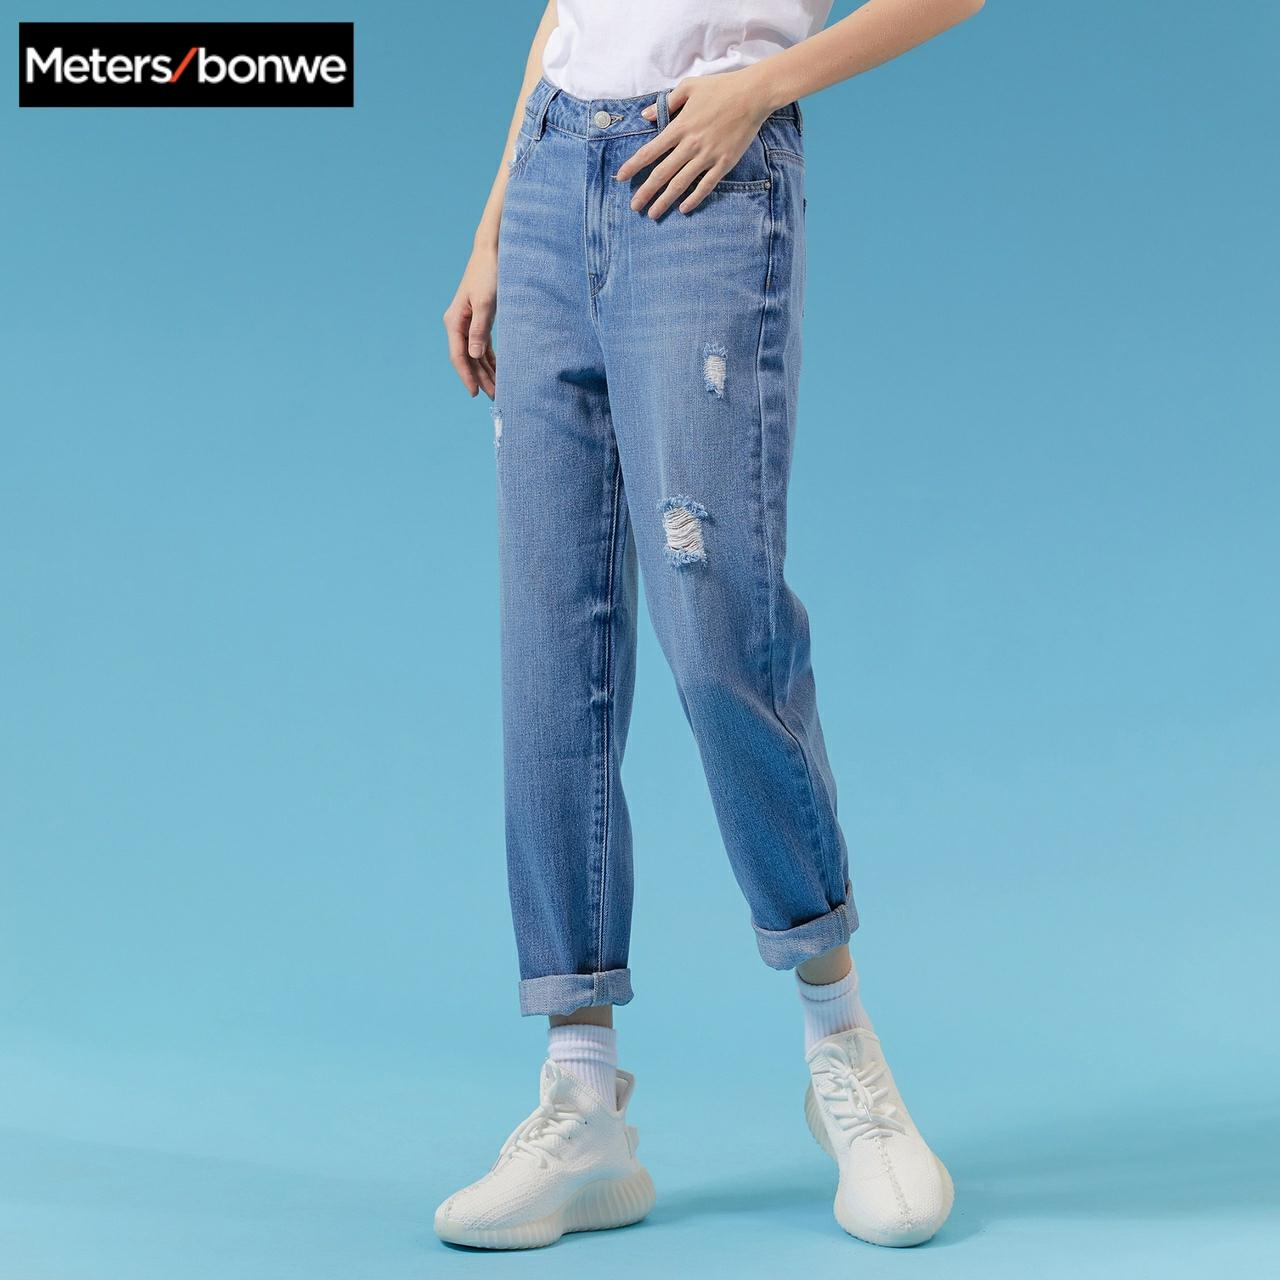 Metersbonwe Jeans Women 2020 Spring New Cowgirl Mid-Waist High Quality Classic Straight Casual Ripped Jeans